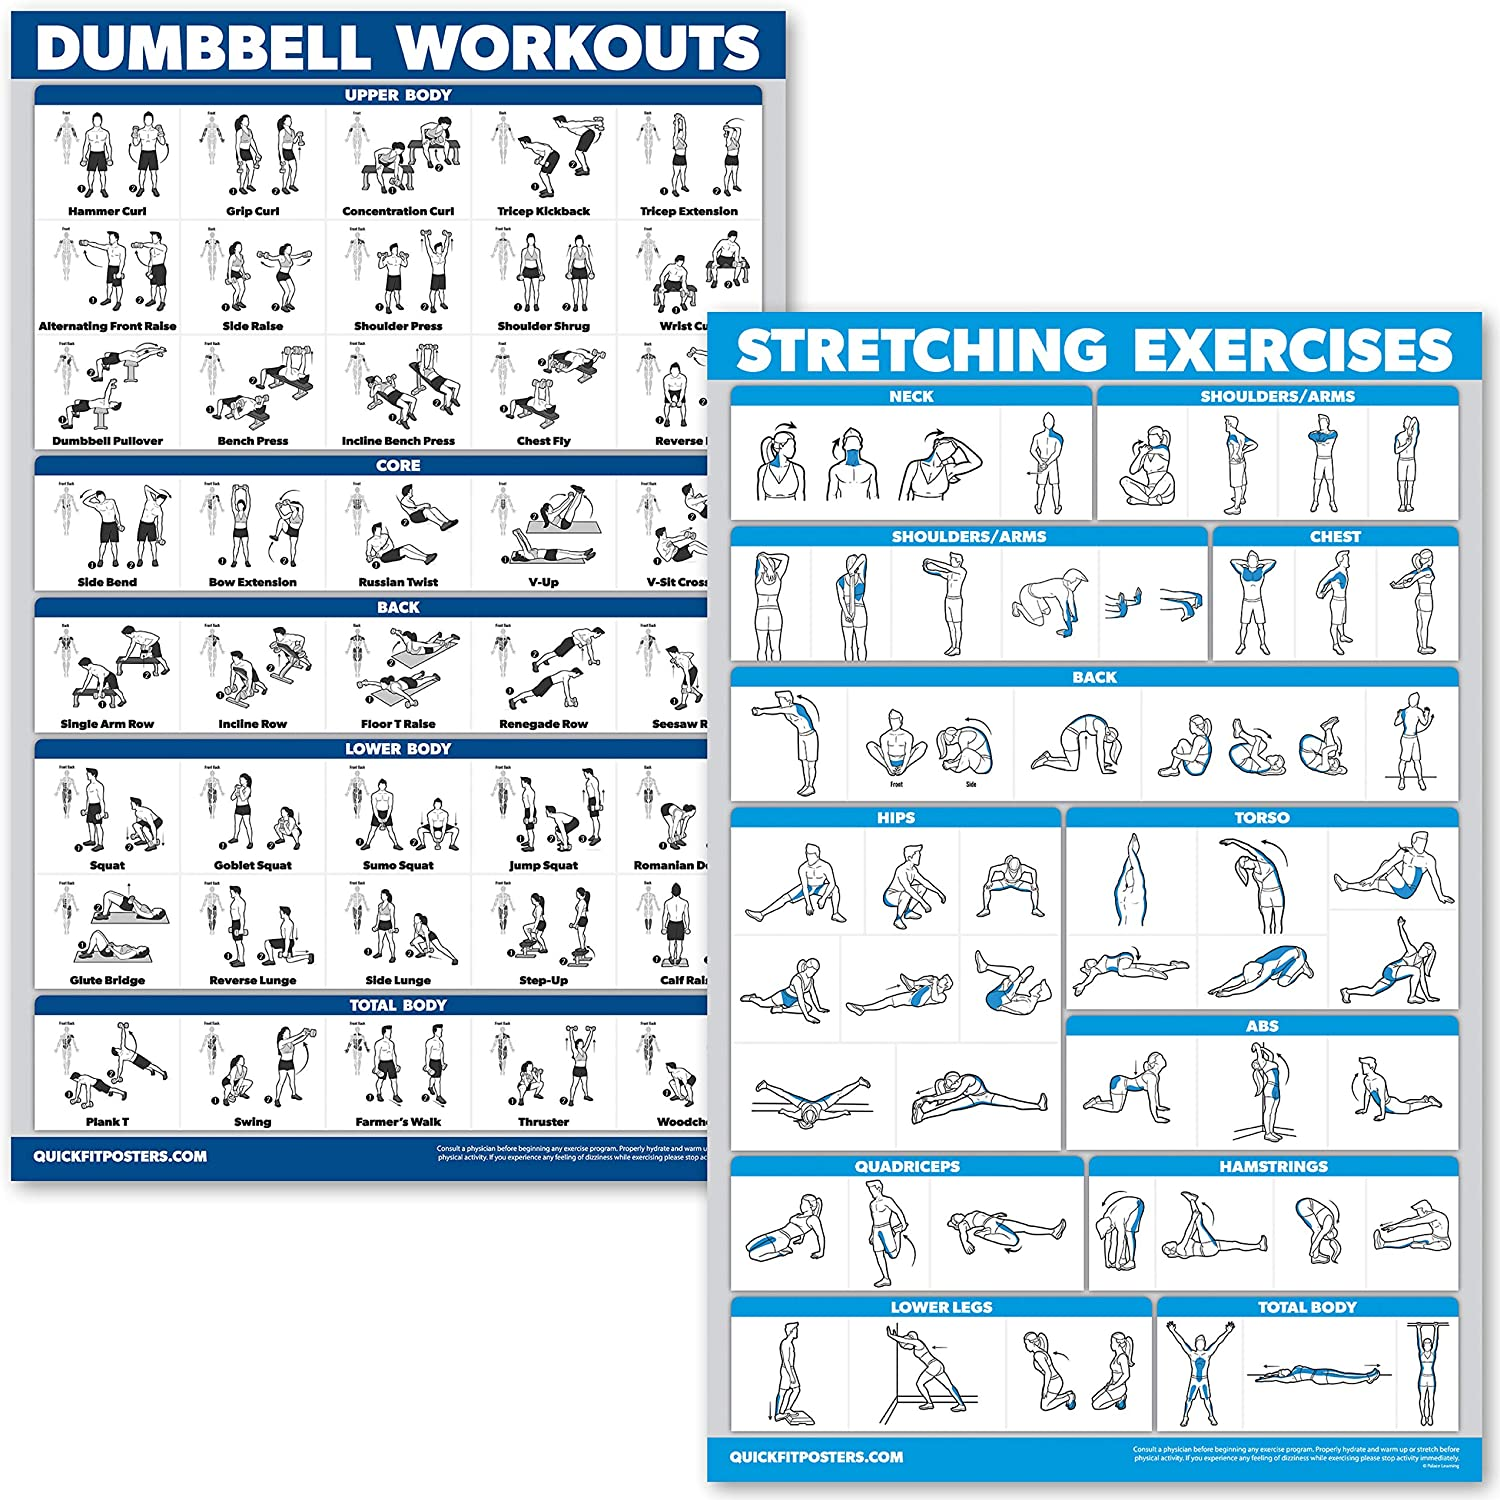 QuickFit Dumbbell Workouts and Stretching Exercise Poster Set - Laminated 2 Chart Set - Dumbbell Exercise Routine & Stretching Workouts